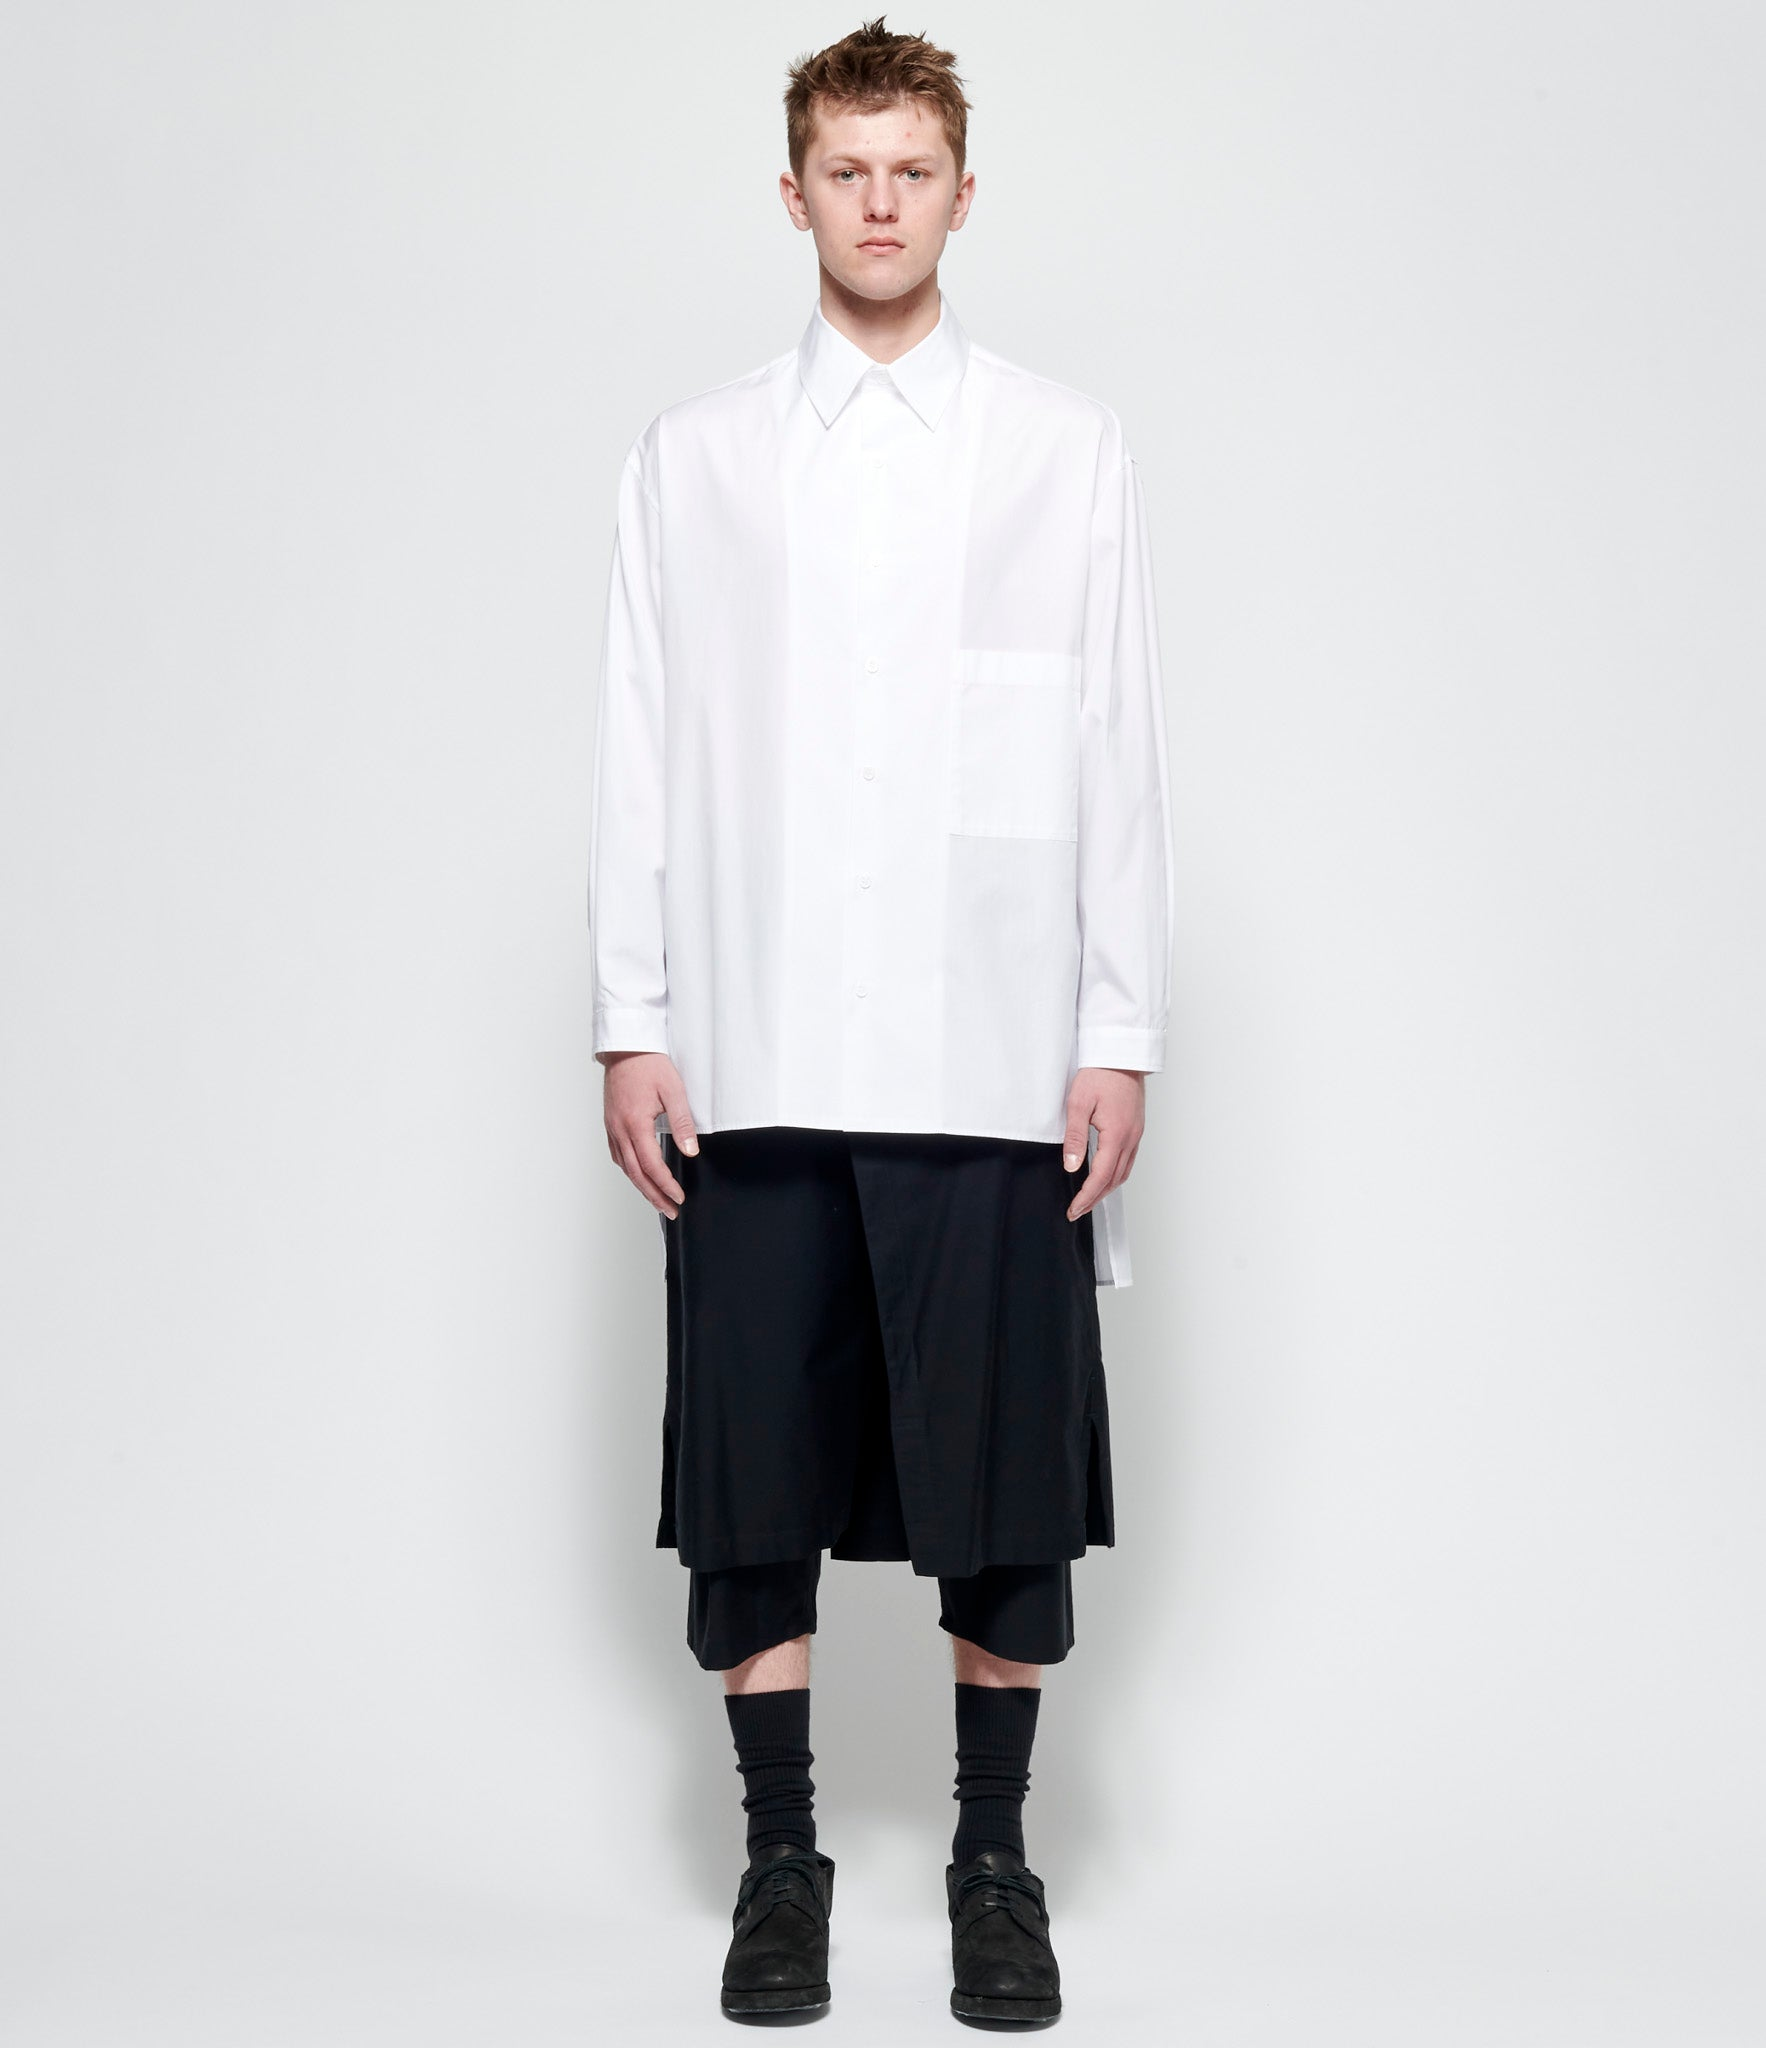 Yohji Yamamoto Pour Homme White M-FB Difference B Broad Shirt